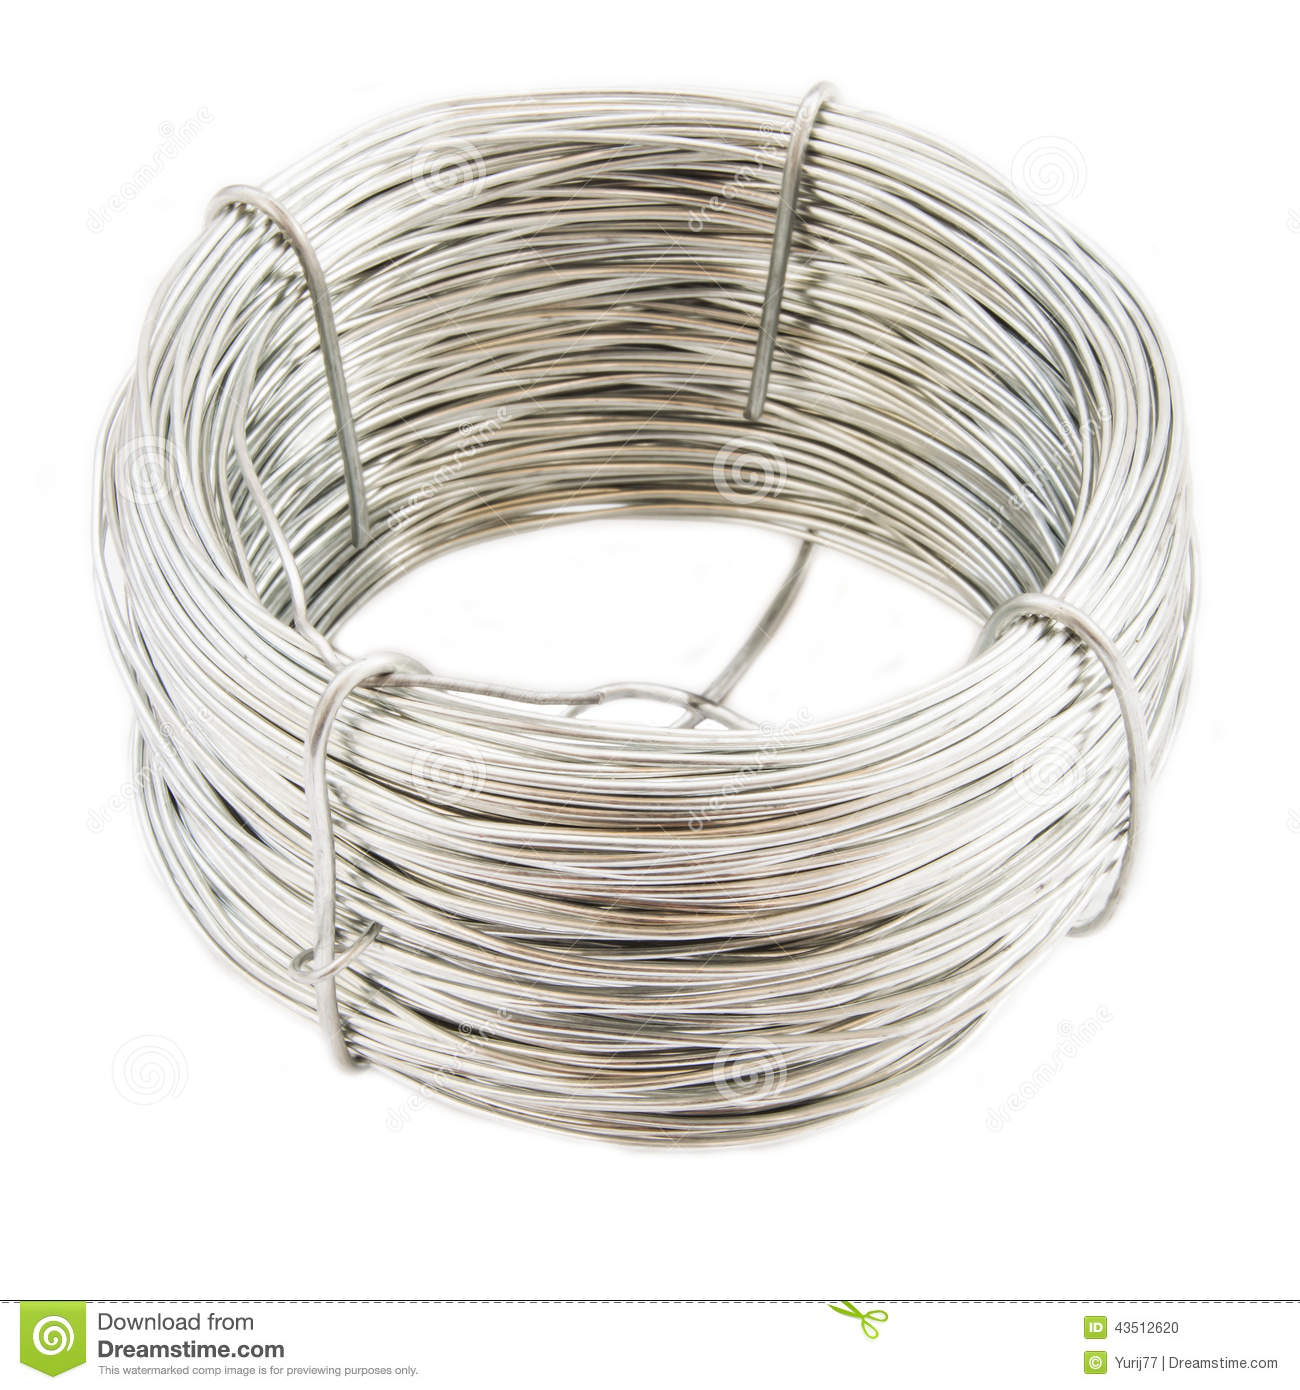 Coil of metal wire stock photo. Image of metal, circle - 43512620